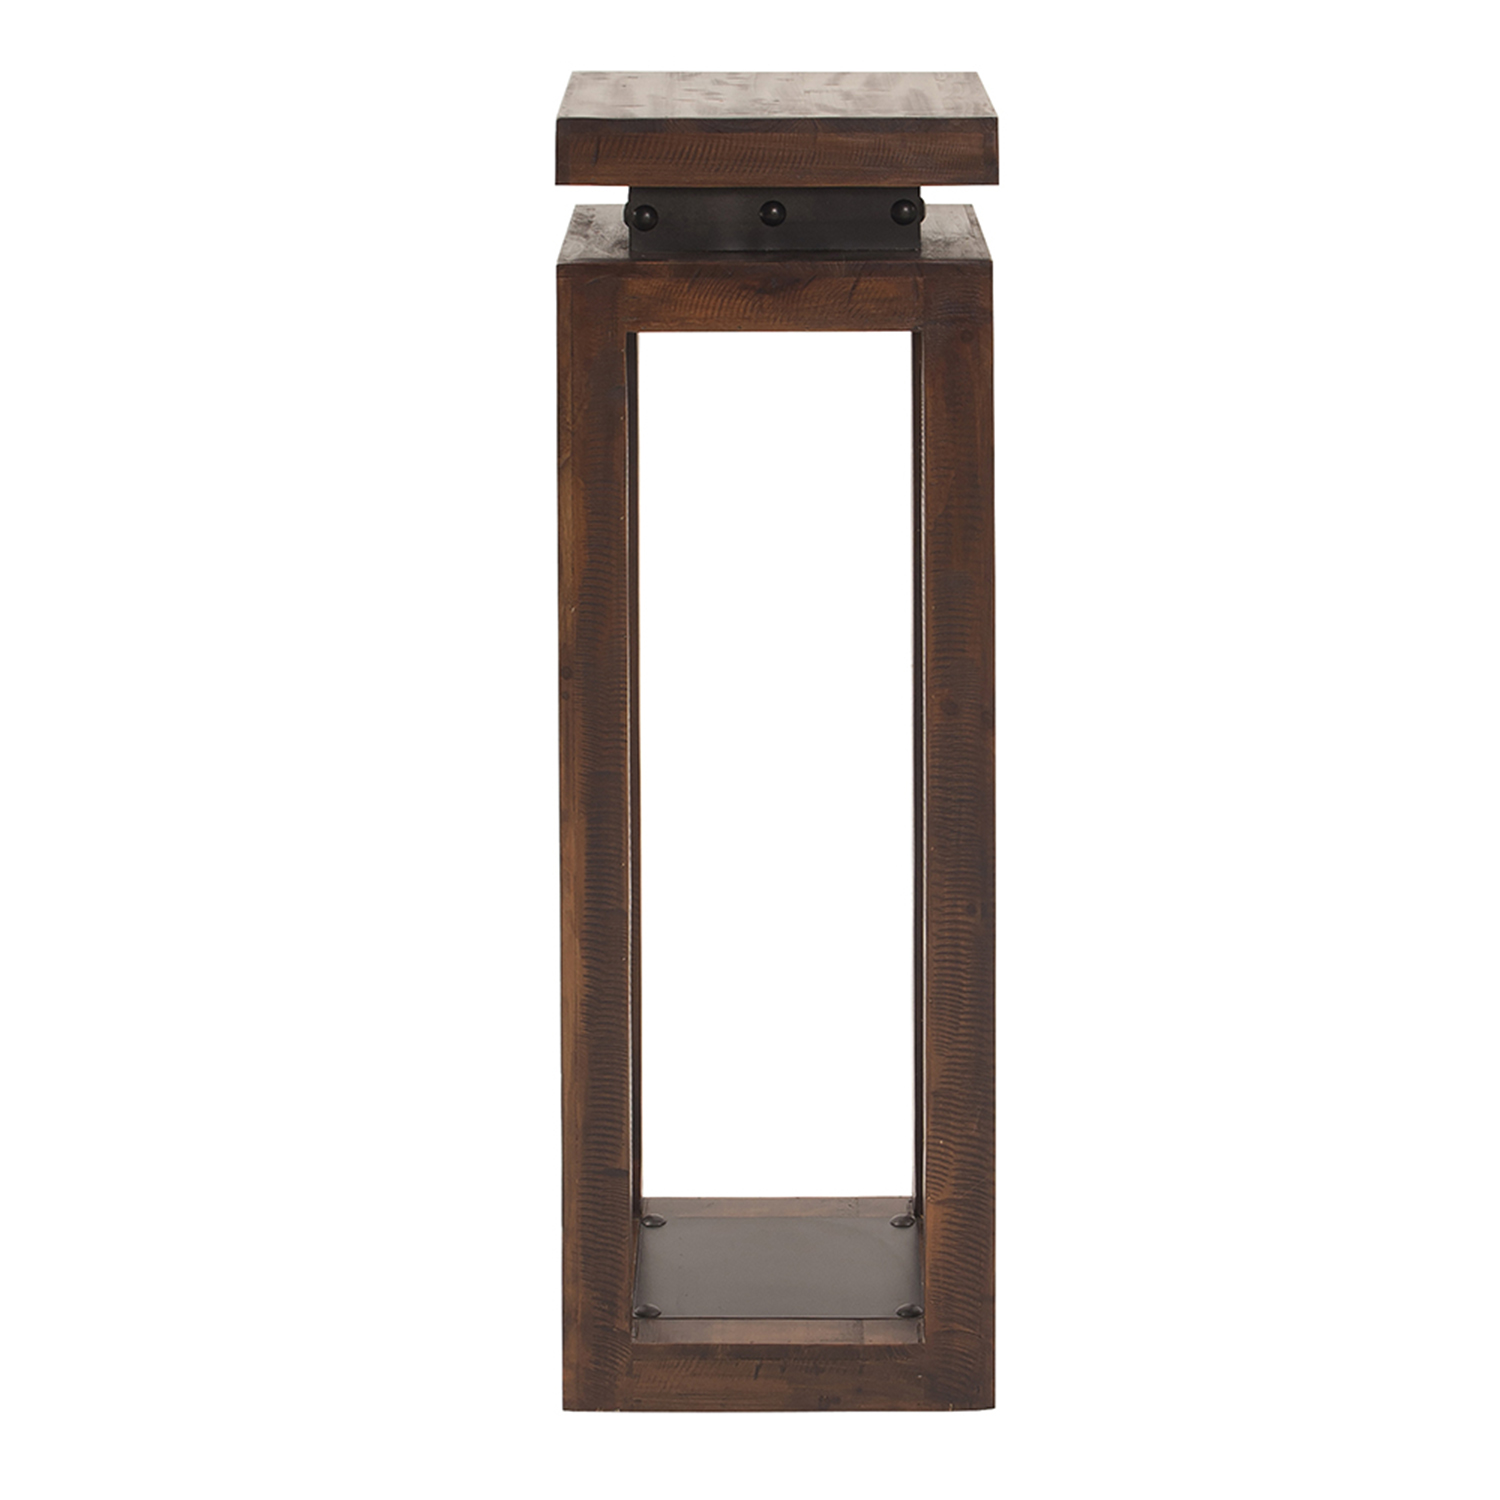 howard elliott collection rustic wood pedestal table with iron accent accents hover zoom unique patio furniture target bench threshold windham cabinet cream round side gray end